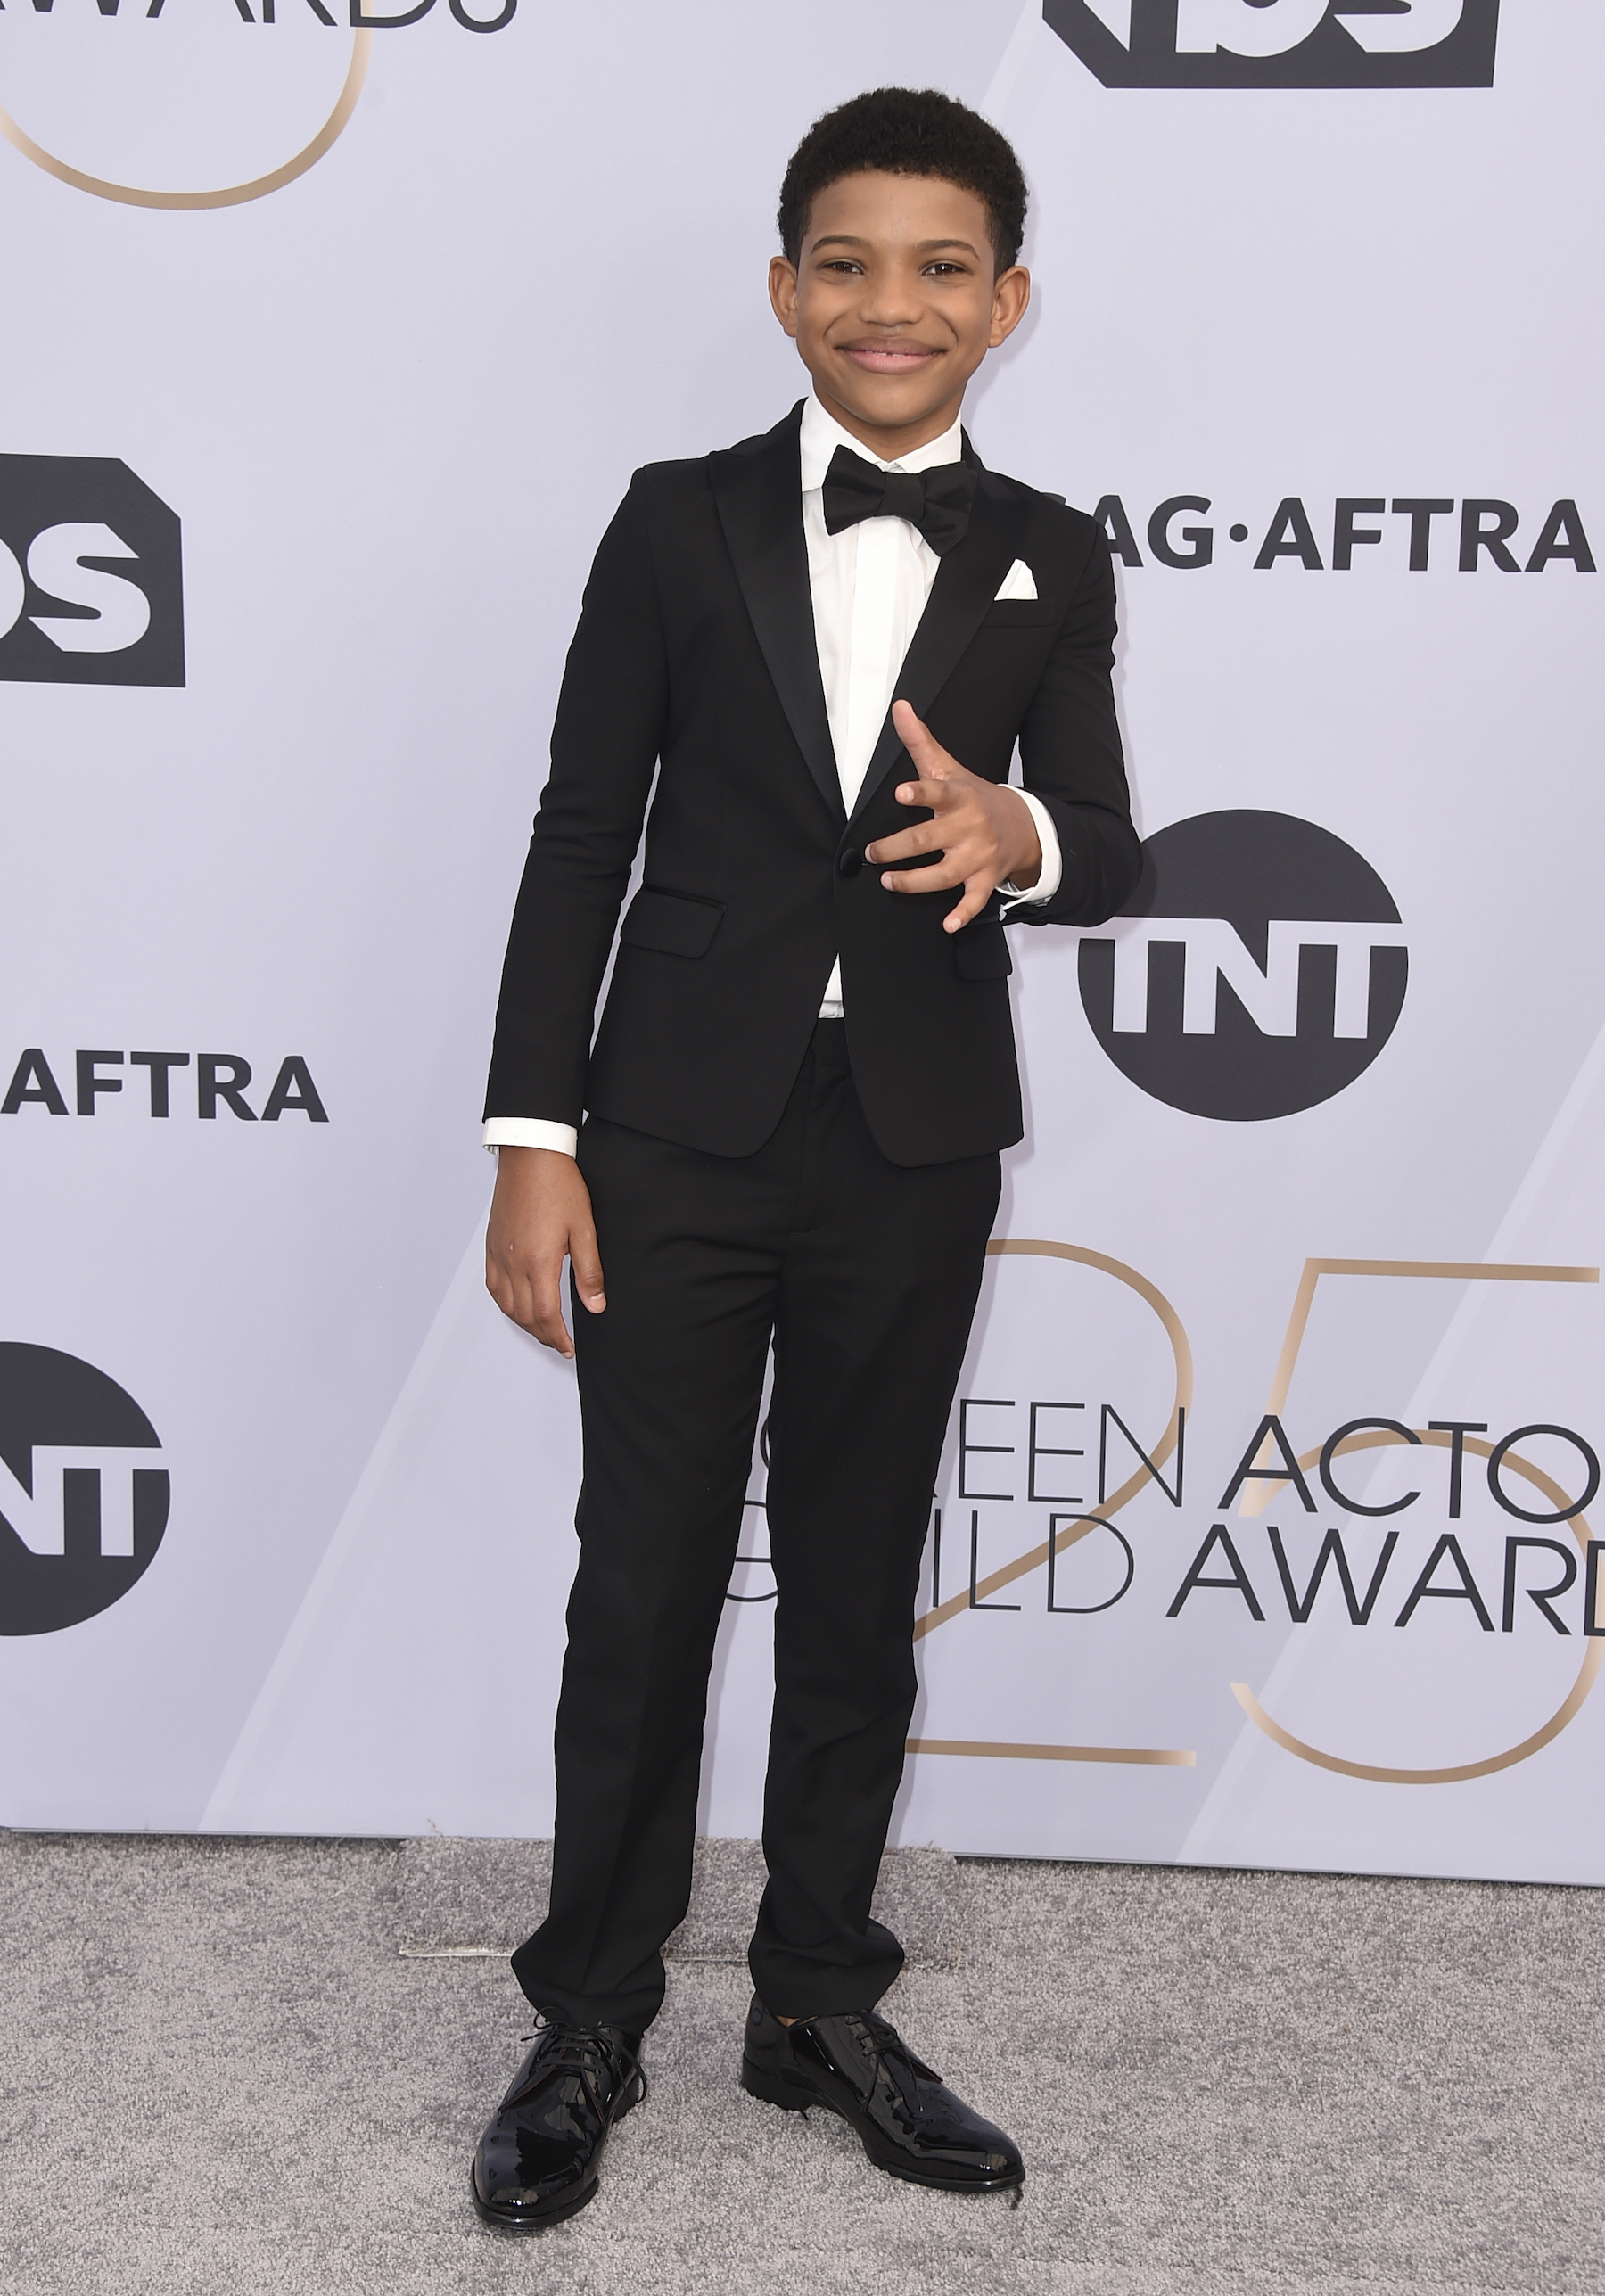 "<div class=""meta image-caption""><div class=""origin-logo origin-image ap""><span>AP</span></div><span class=""caption-text"">Lonnie Chavis arrives at the 25th annual Screen Actors Guild Awards at the Shrine Auditorium & Expo Hall on Sunday, Jan. 27, 2019, in Los Angeles. (Jordan Strauss/Invision/AP)</span></div>"